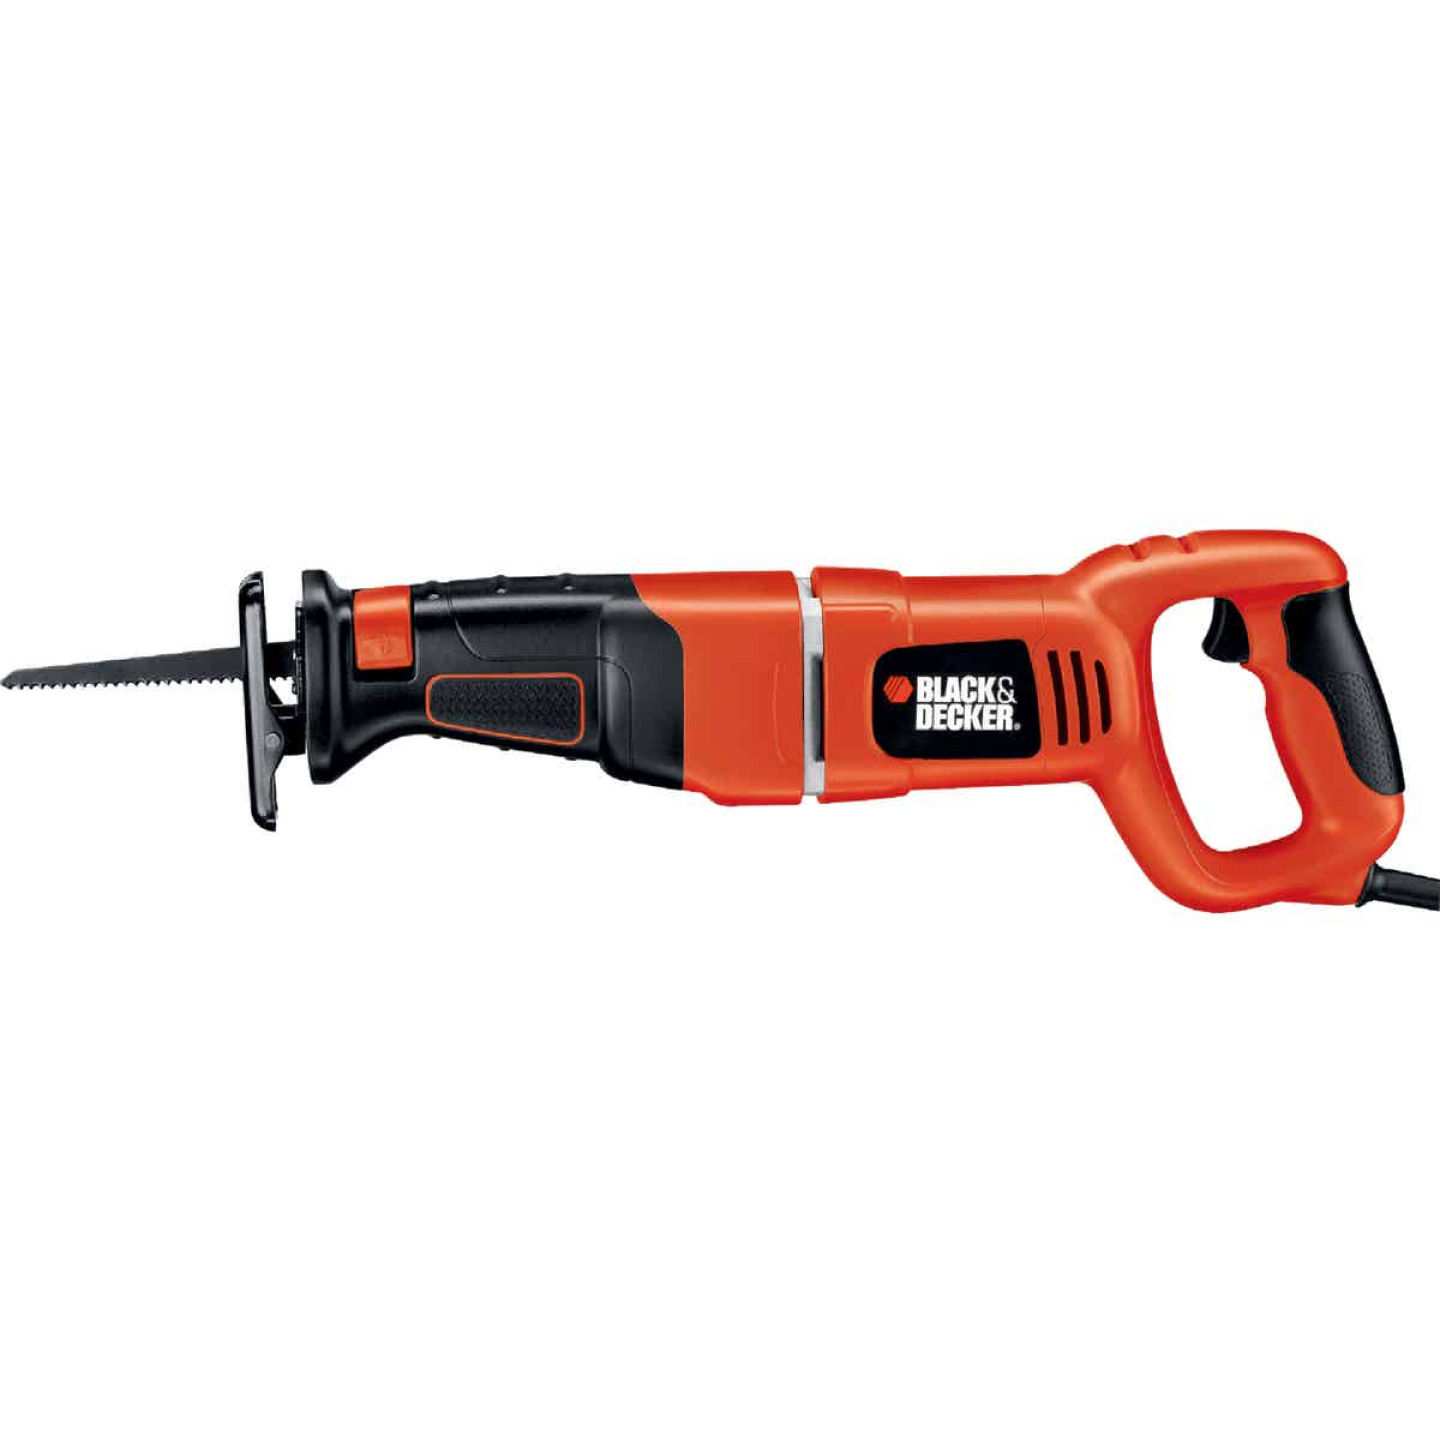 Black & Decker 8.5-Amp Reciprocating Saw Kit Image 1